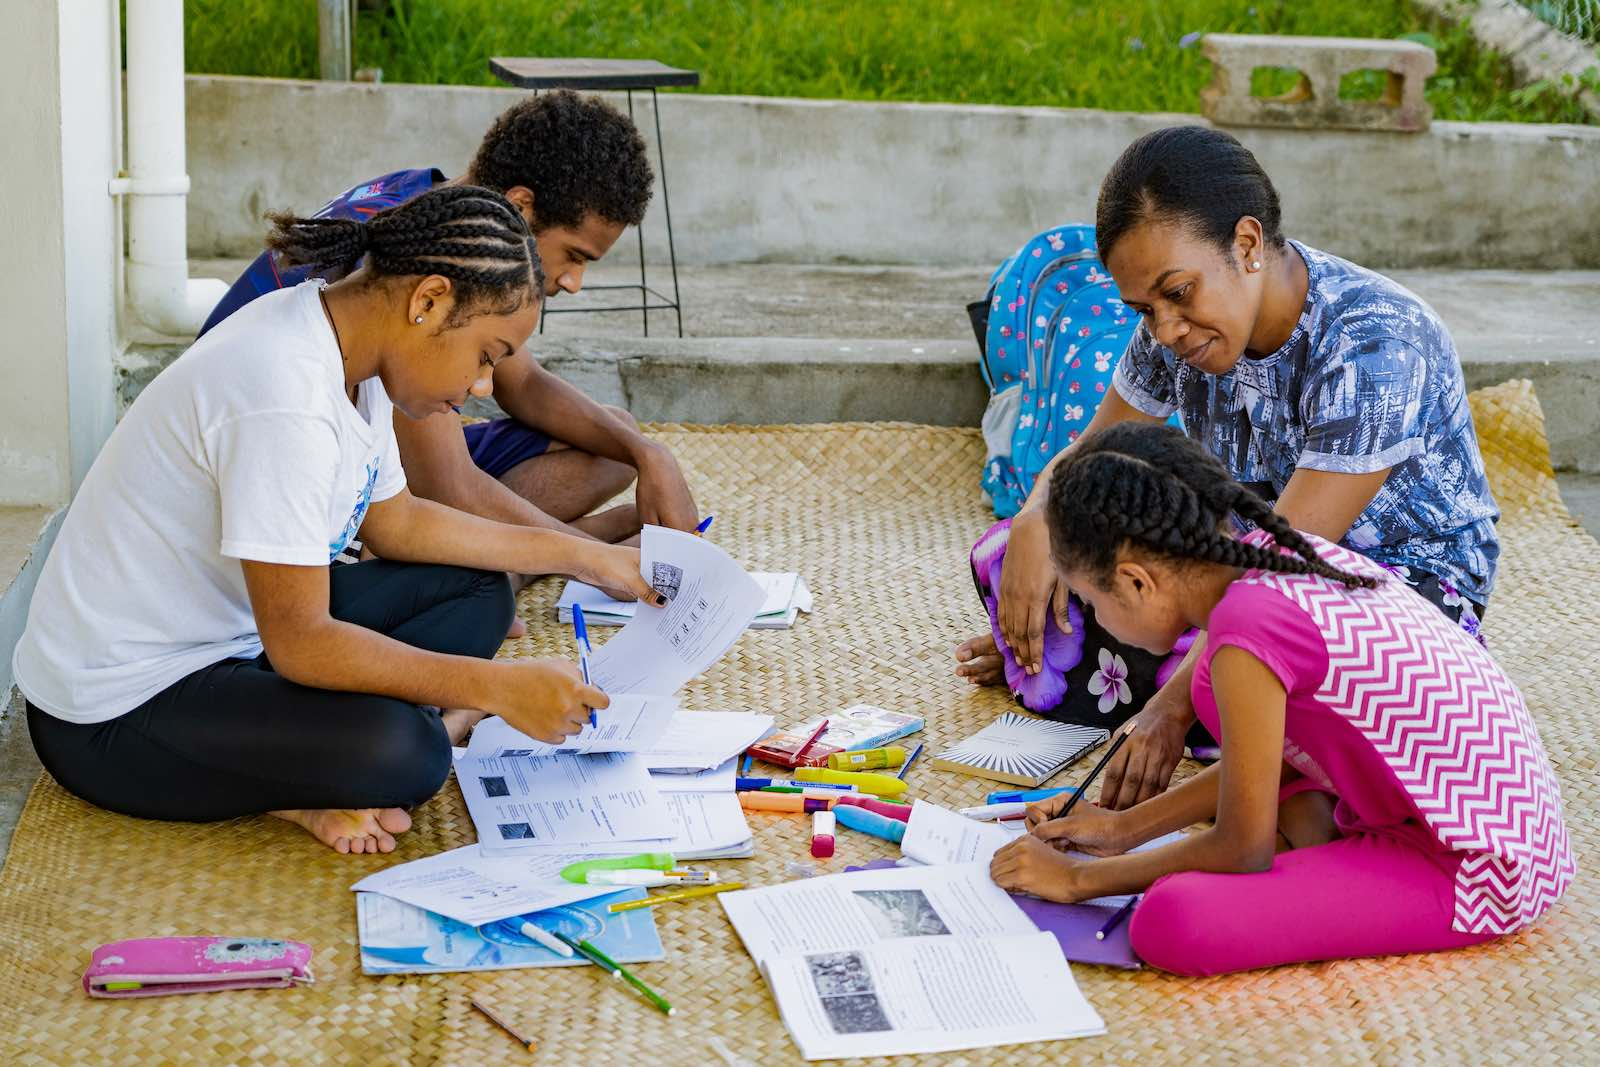 Home schooling in Fiji during the Covid-19 lockdown (Asian Development Bank/Flickr)